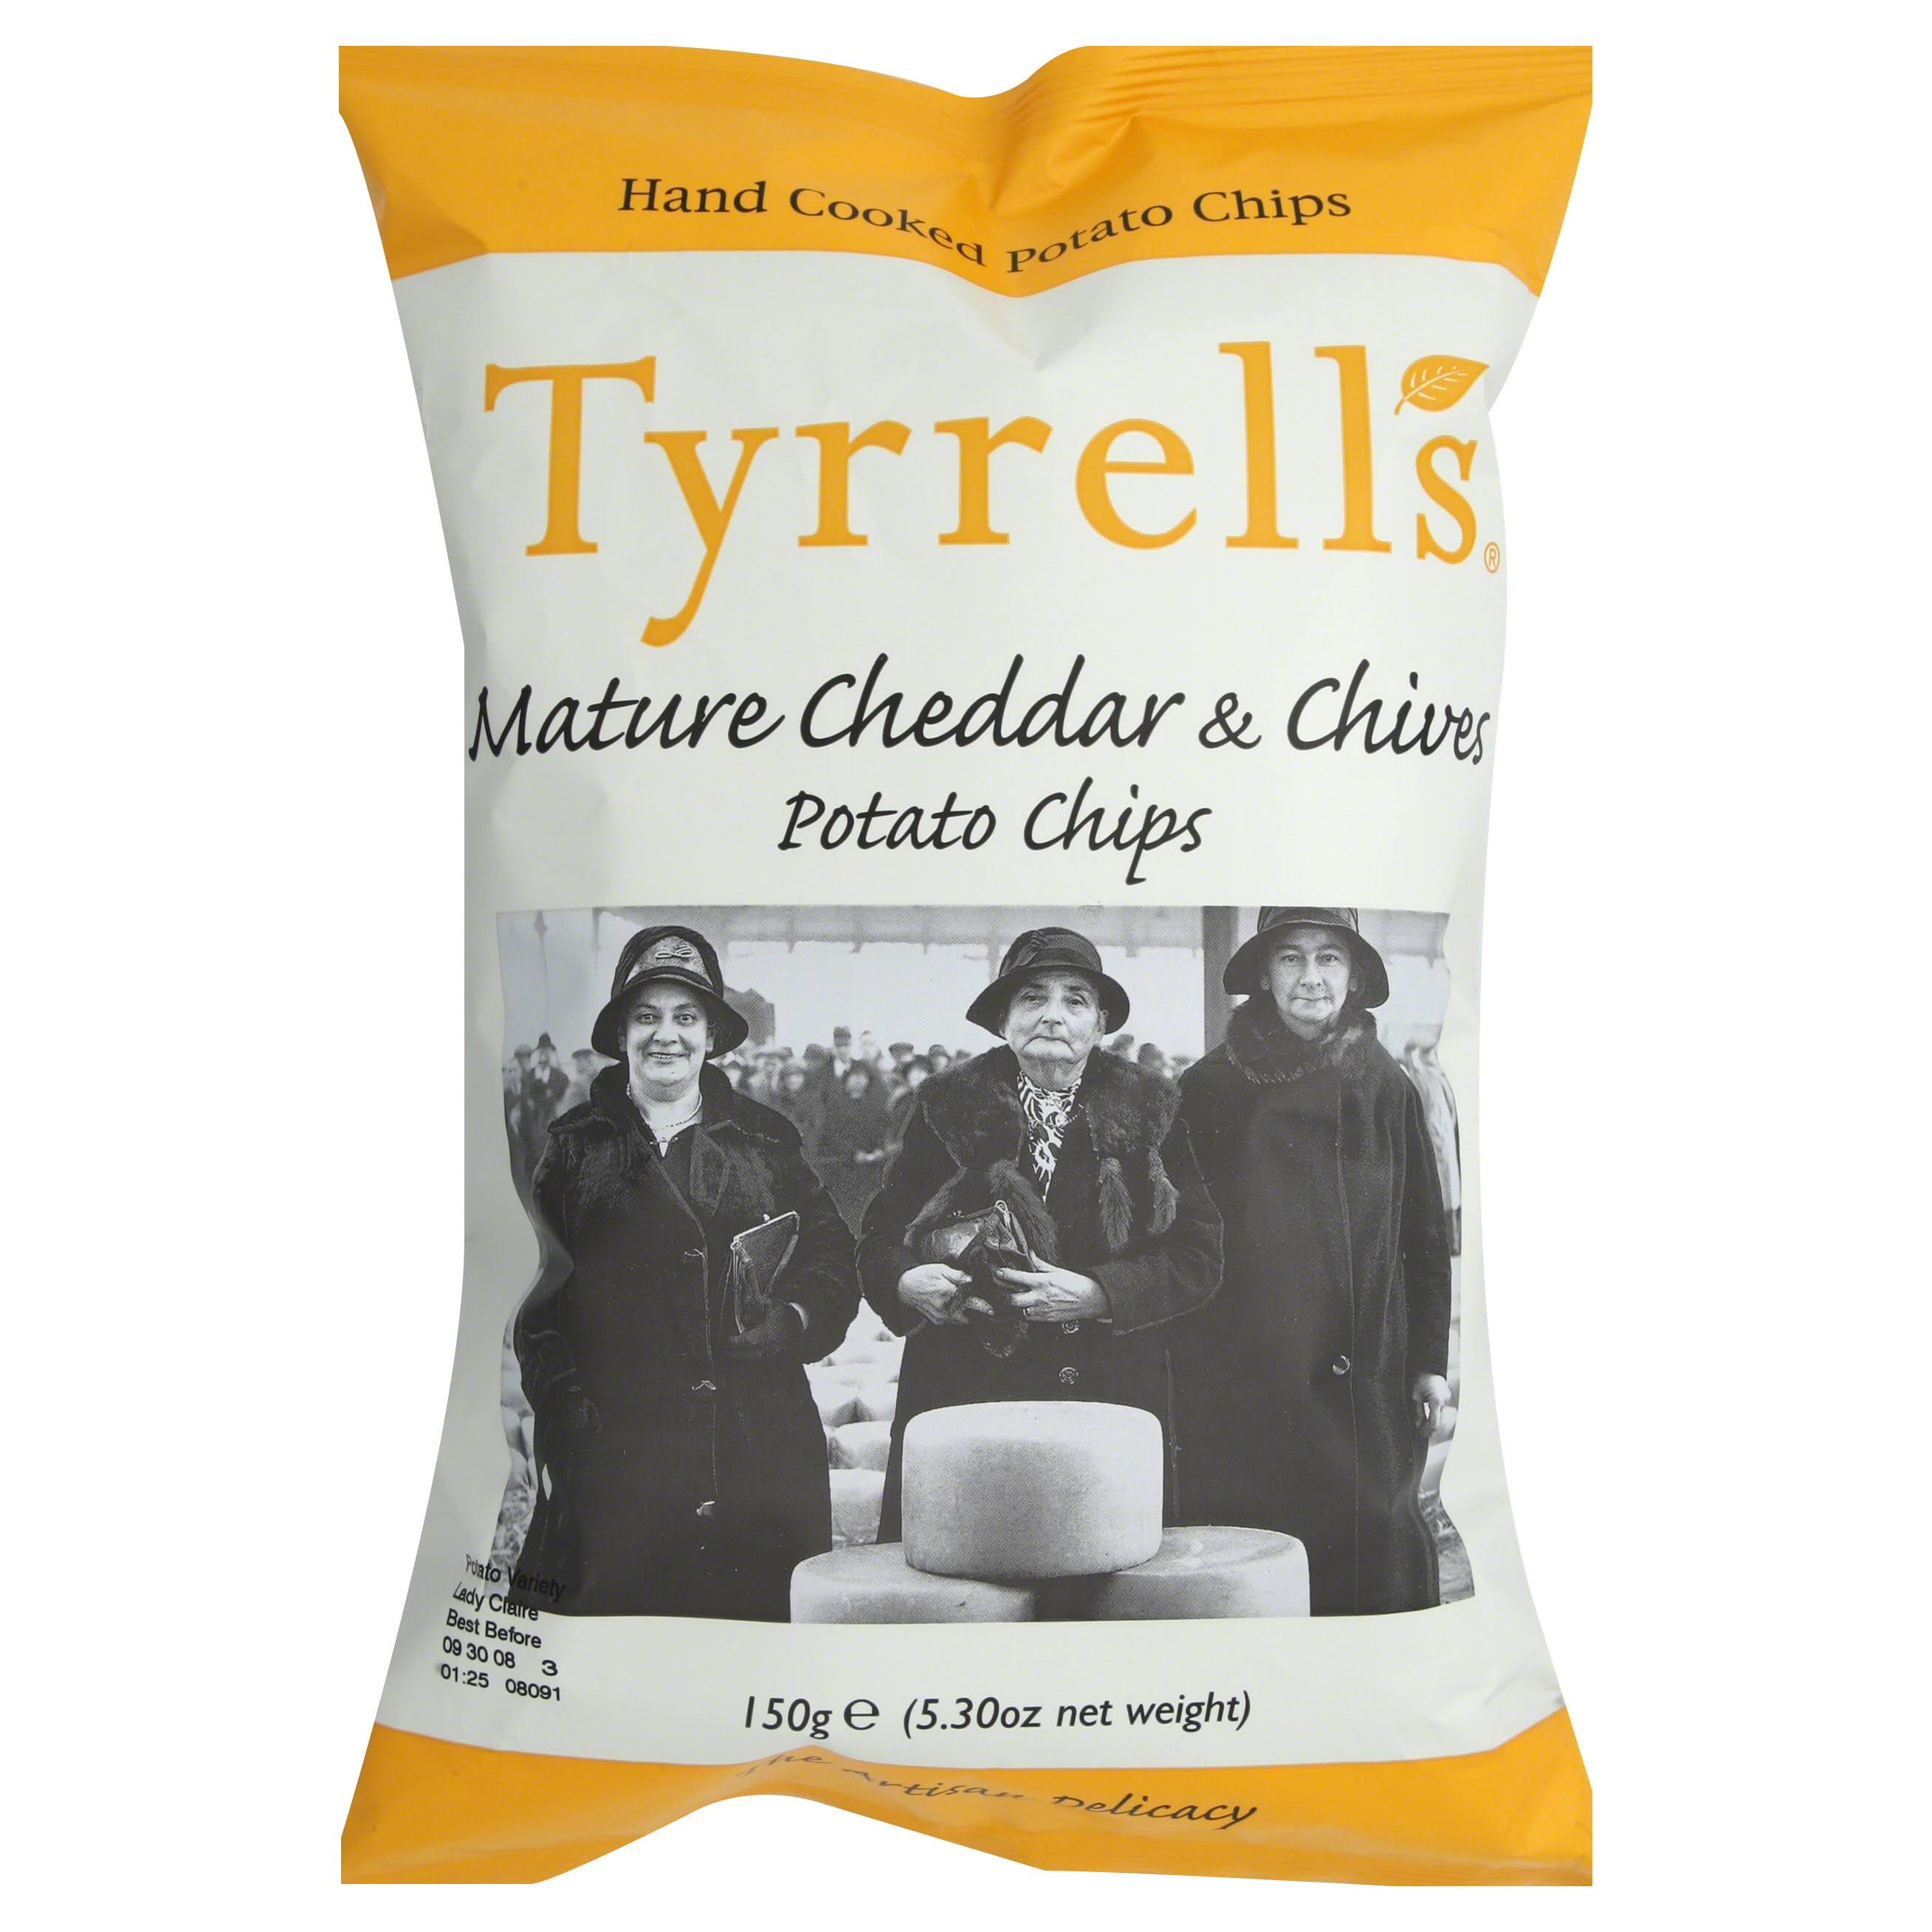 Tyrrells Hand Cooked English Crisps - Mature Cheddar and Chive, 150g